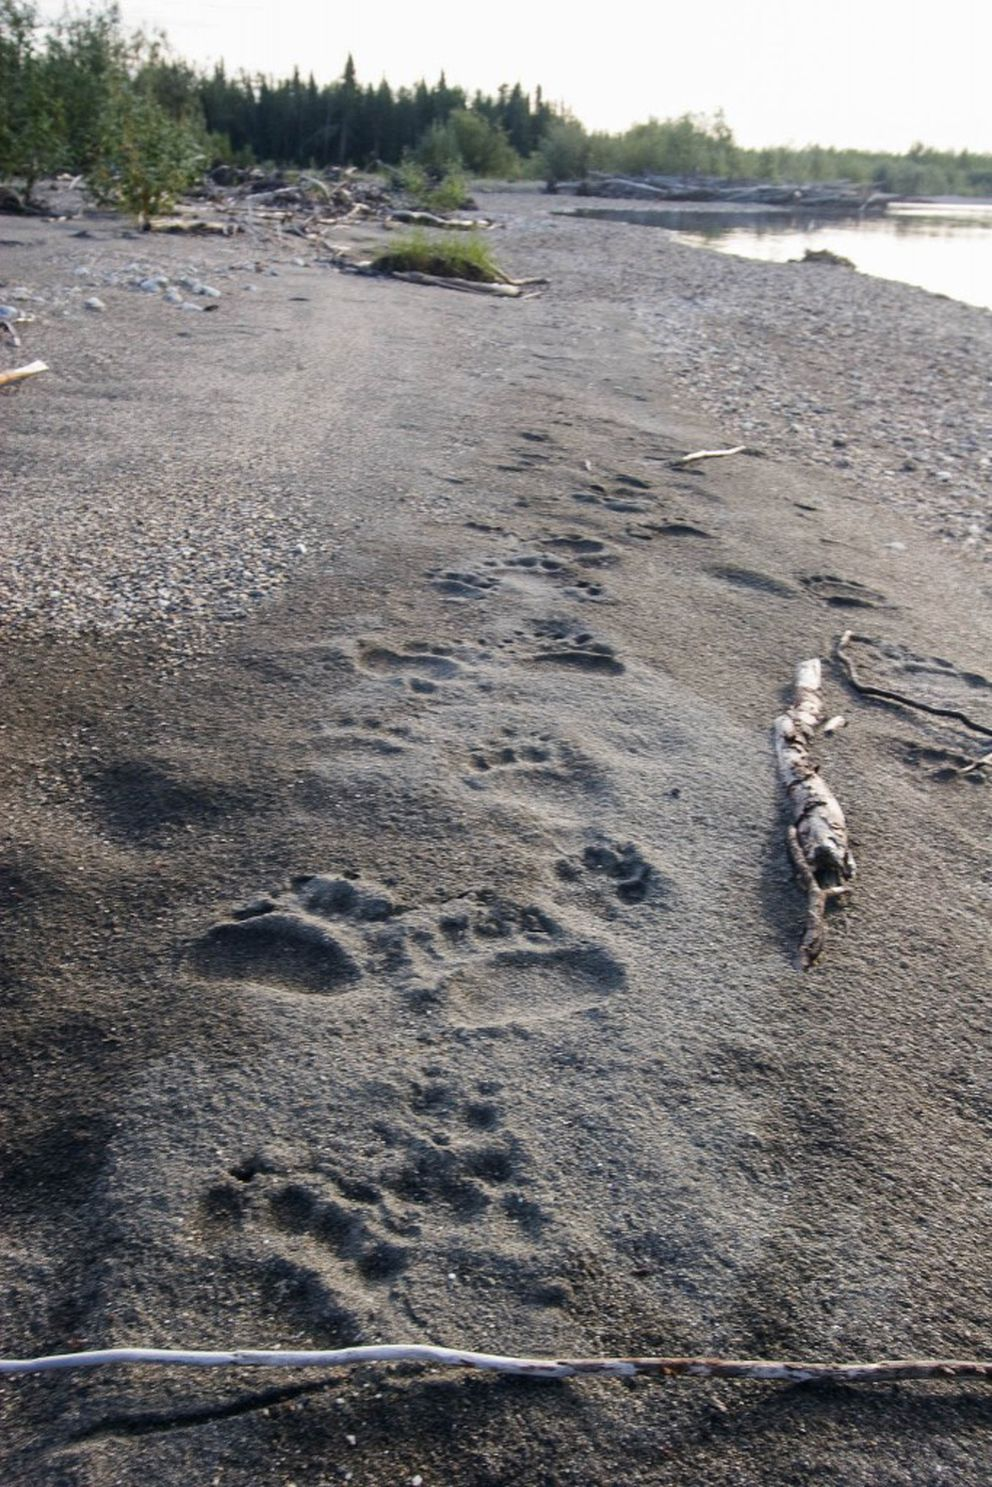 Bear prints near the Salmon River in Kobuk Valley National Park, August 2009. (Photo courtesy National Park Service)